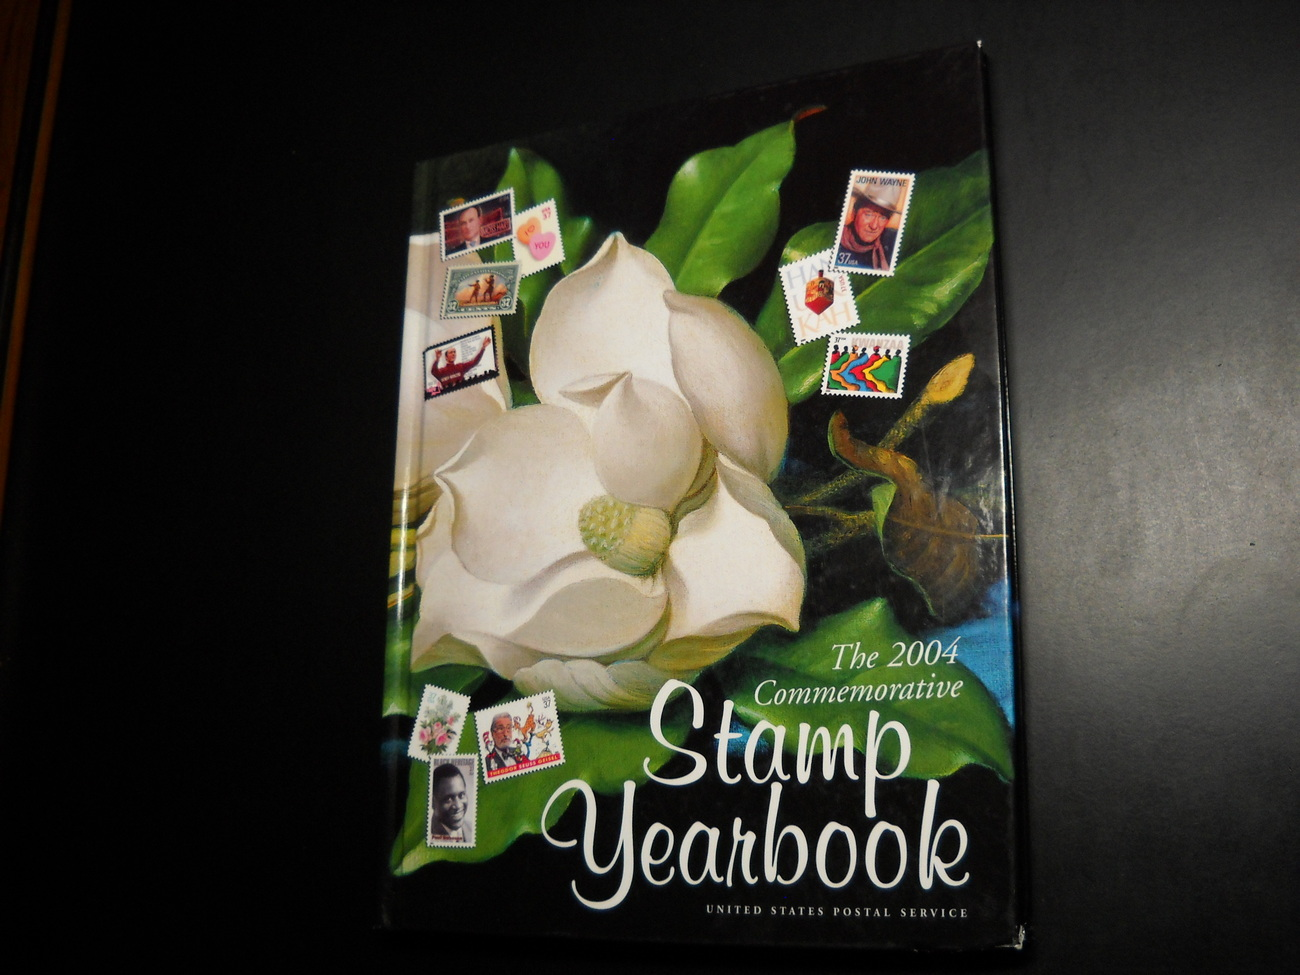 Book_collins_2004_commemorative_stamp_yearbook_united_states_postal_service_usps_hc_01